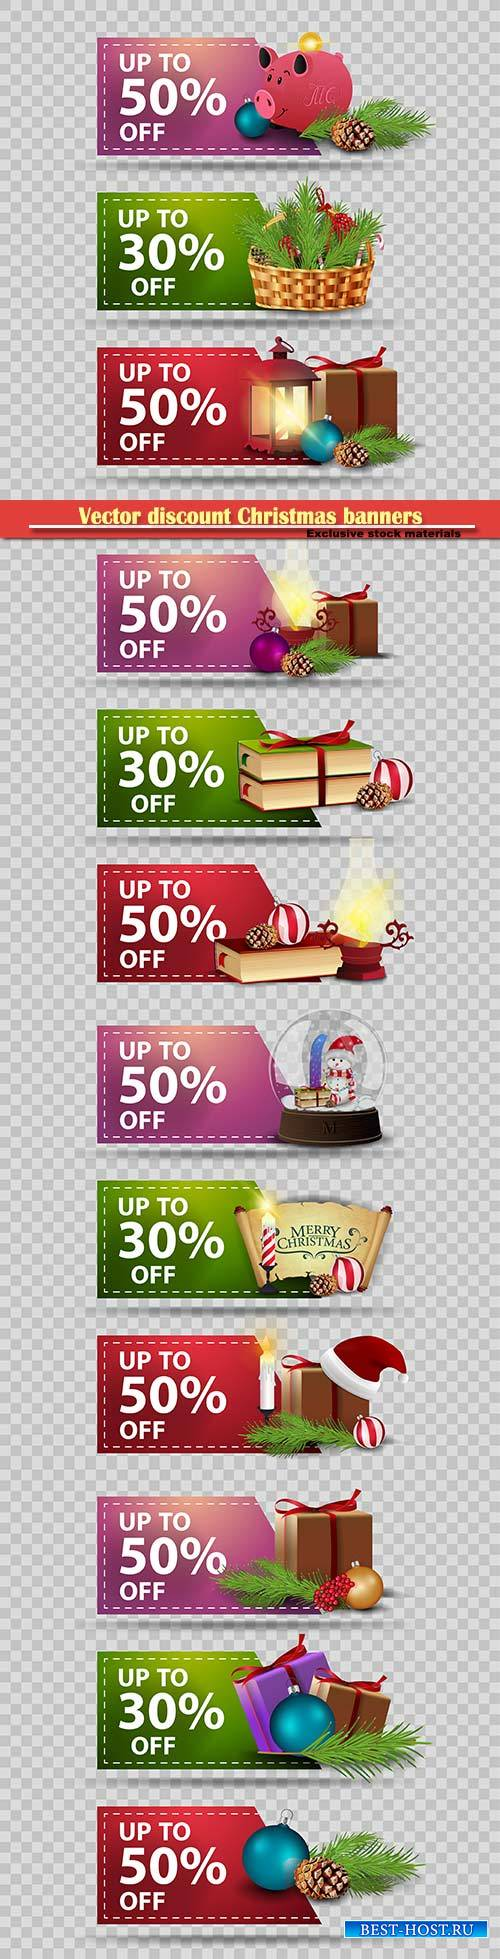 Vector discount Christmas banners